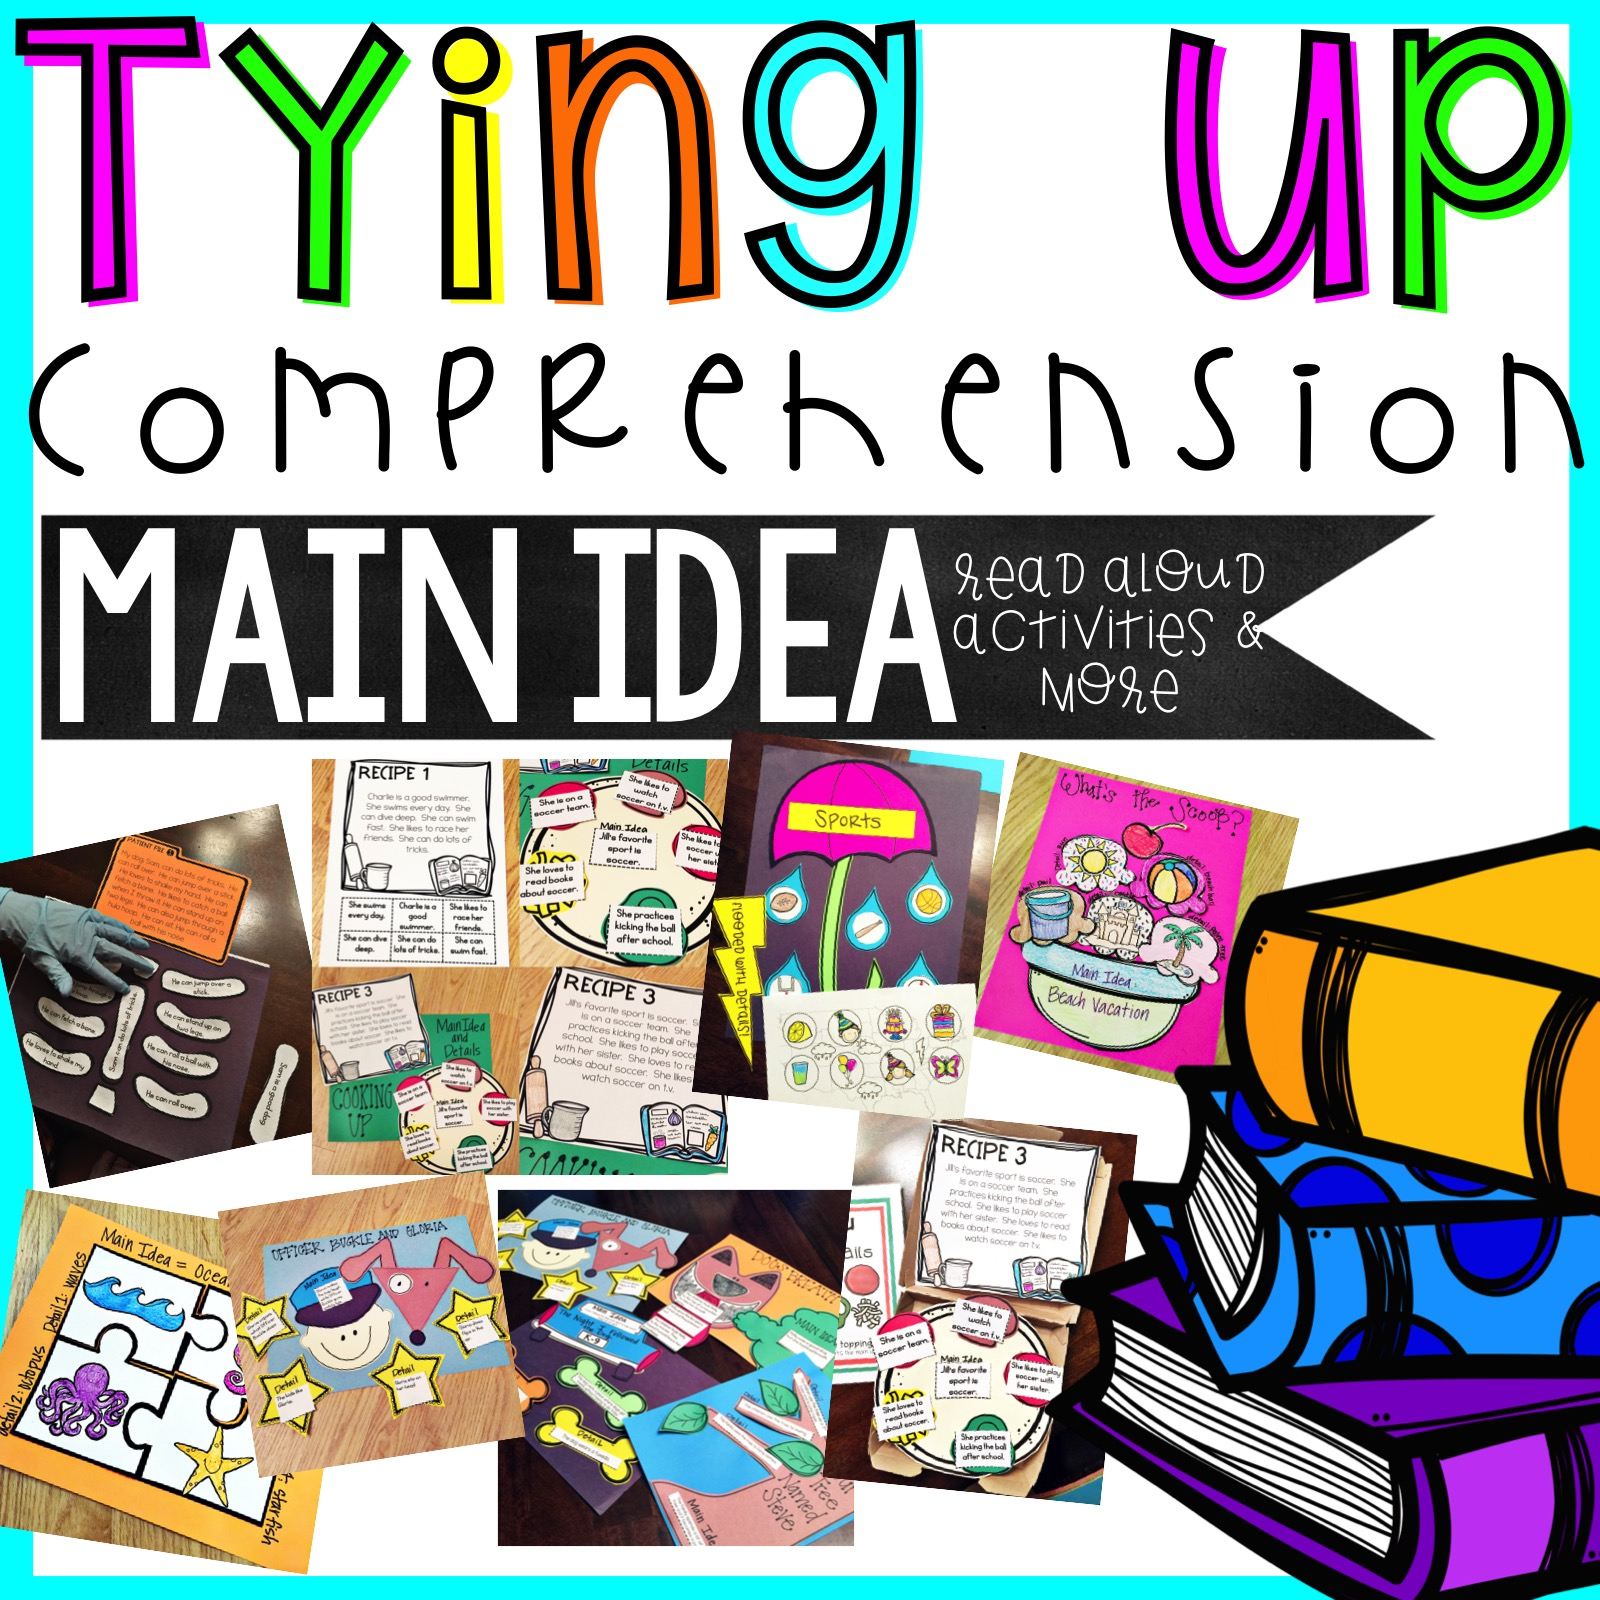 Tying Up Comprehension (Main Idea)